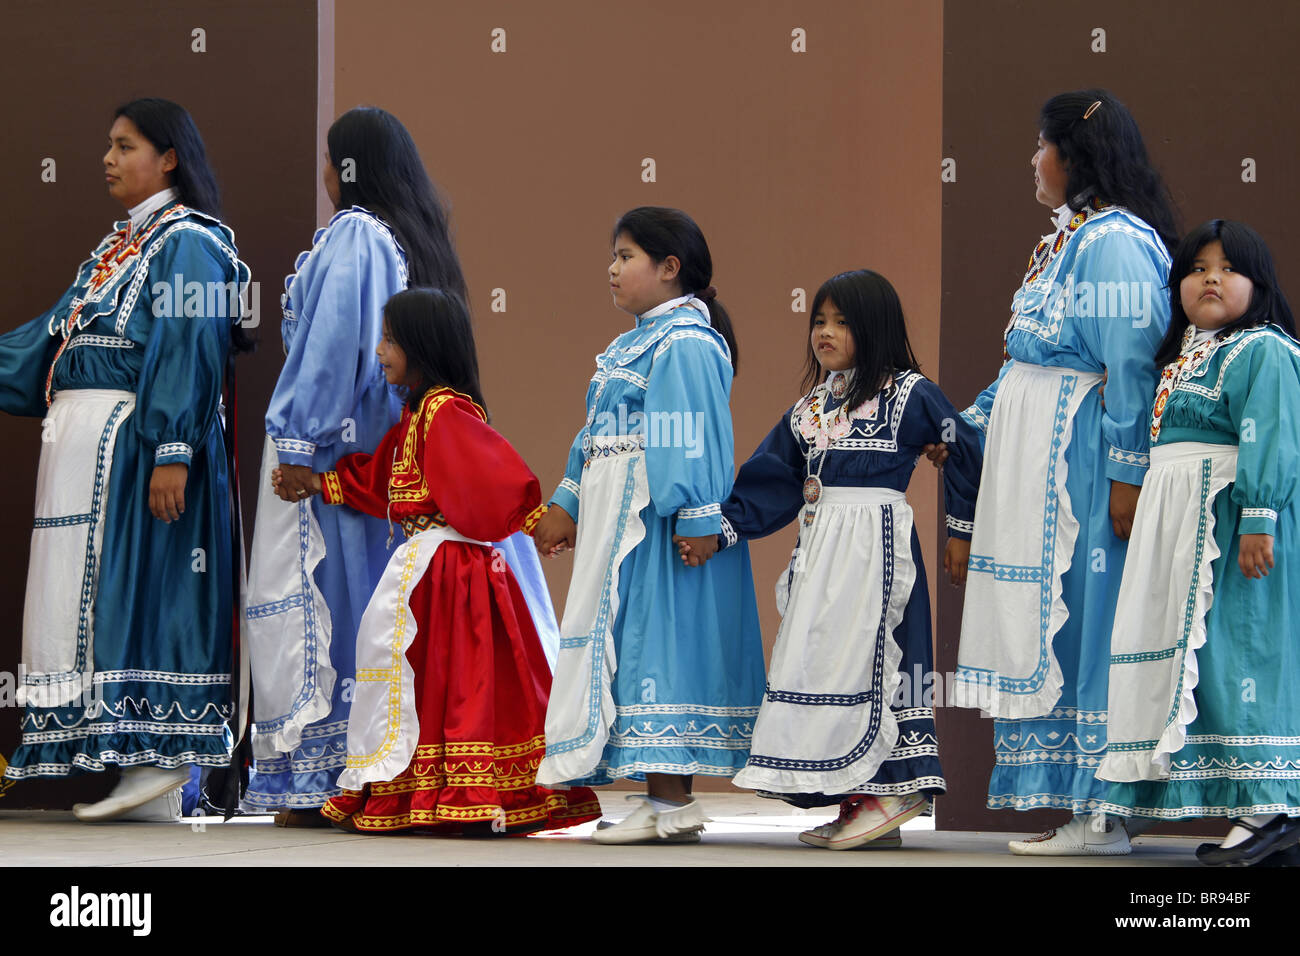 Cherokee, North Carolina -  Chactaw Indians women and girls performing a social dance on stage. - Stock Image